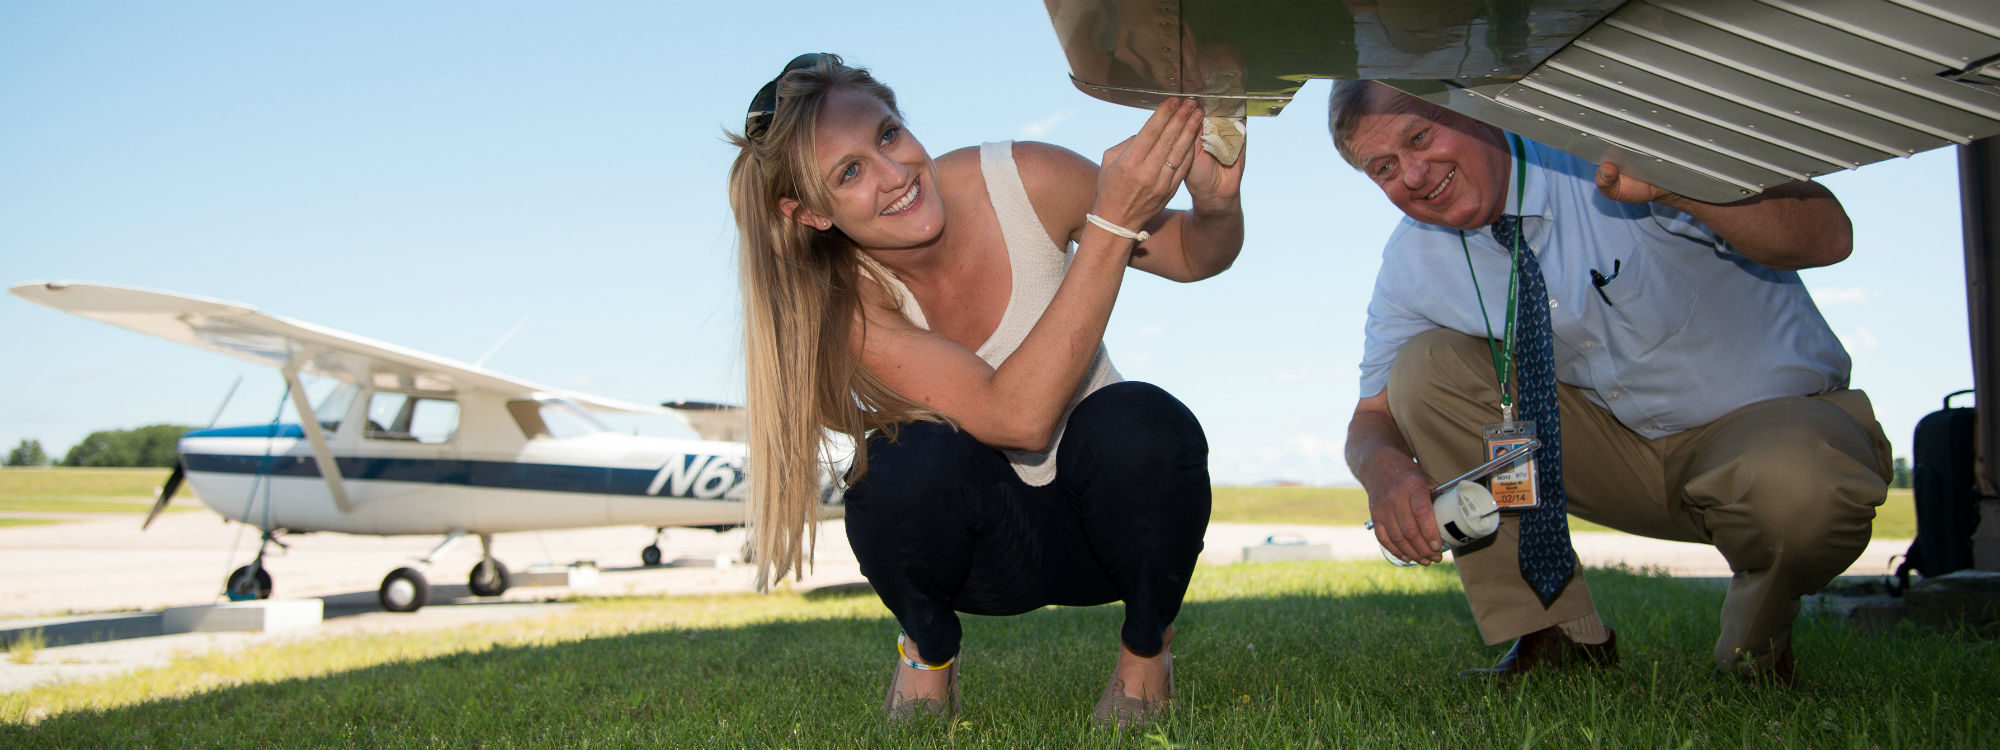 Jamie Heiam inspects a plane with professor Doug Smith before taking off in flight, STEM, hands on